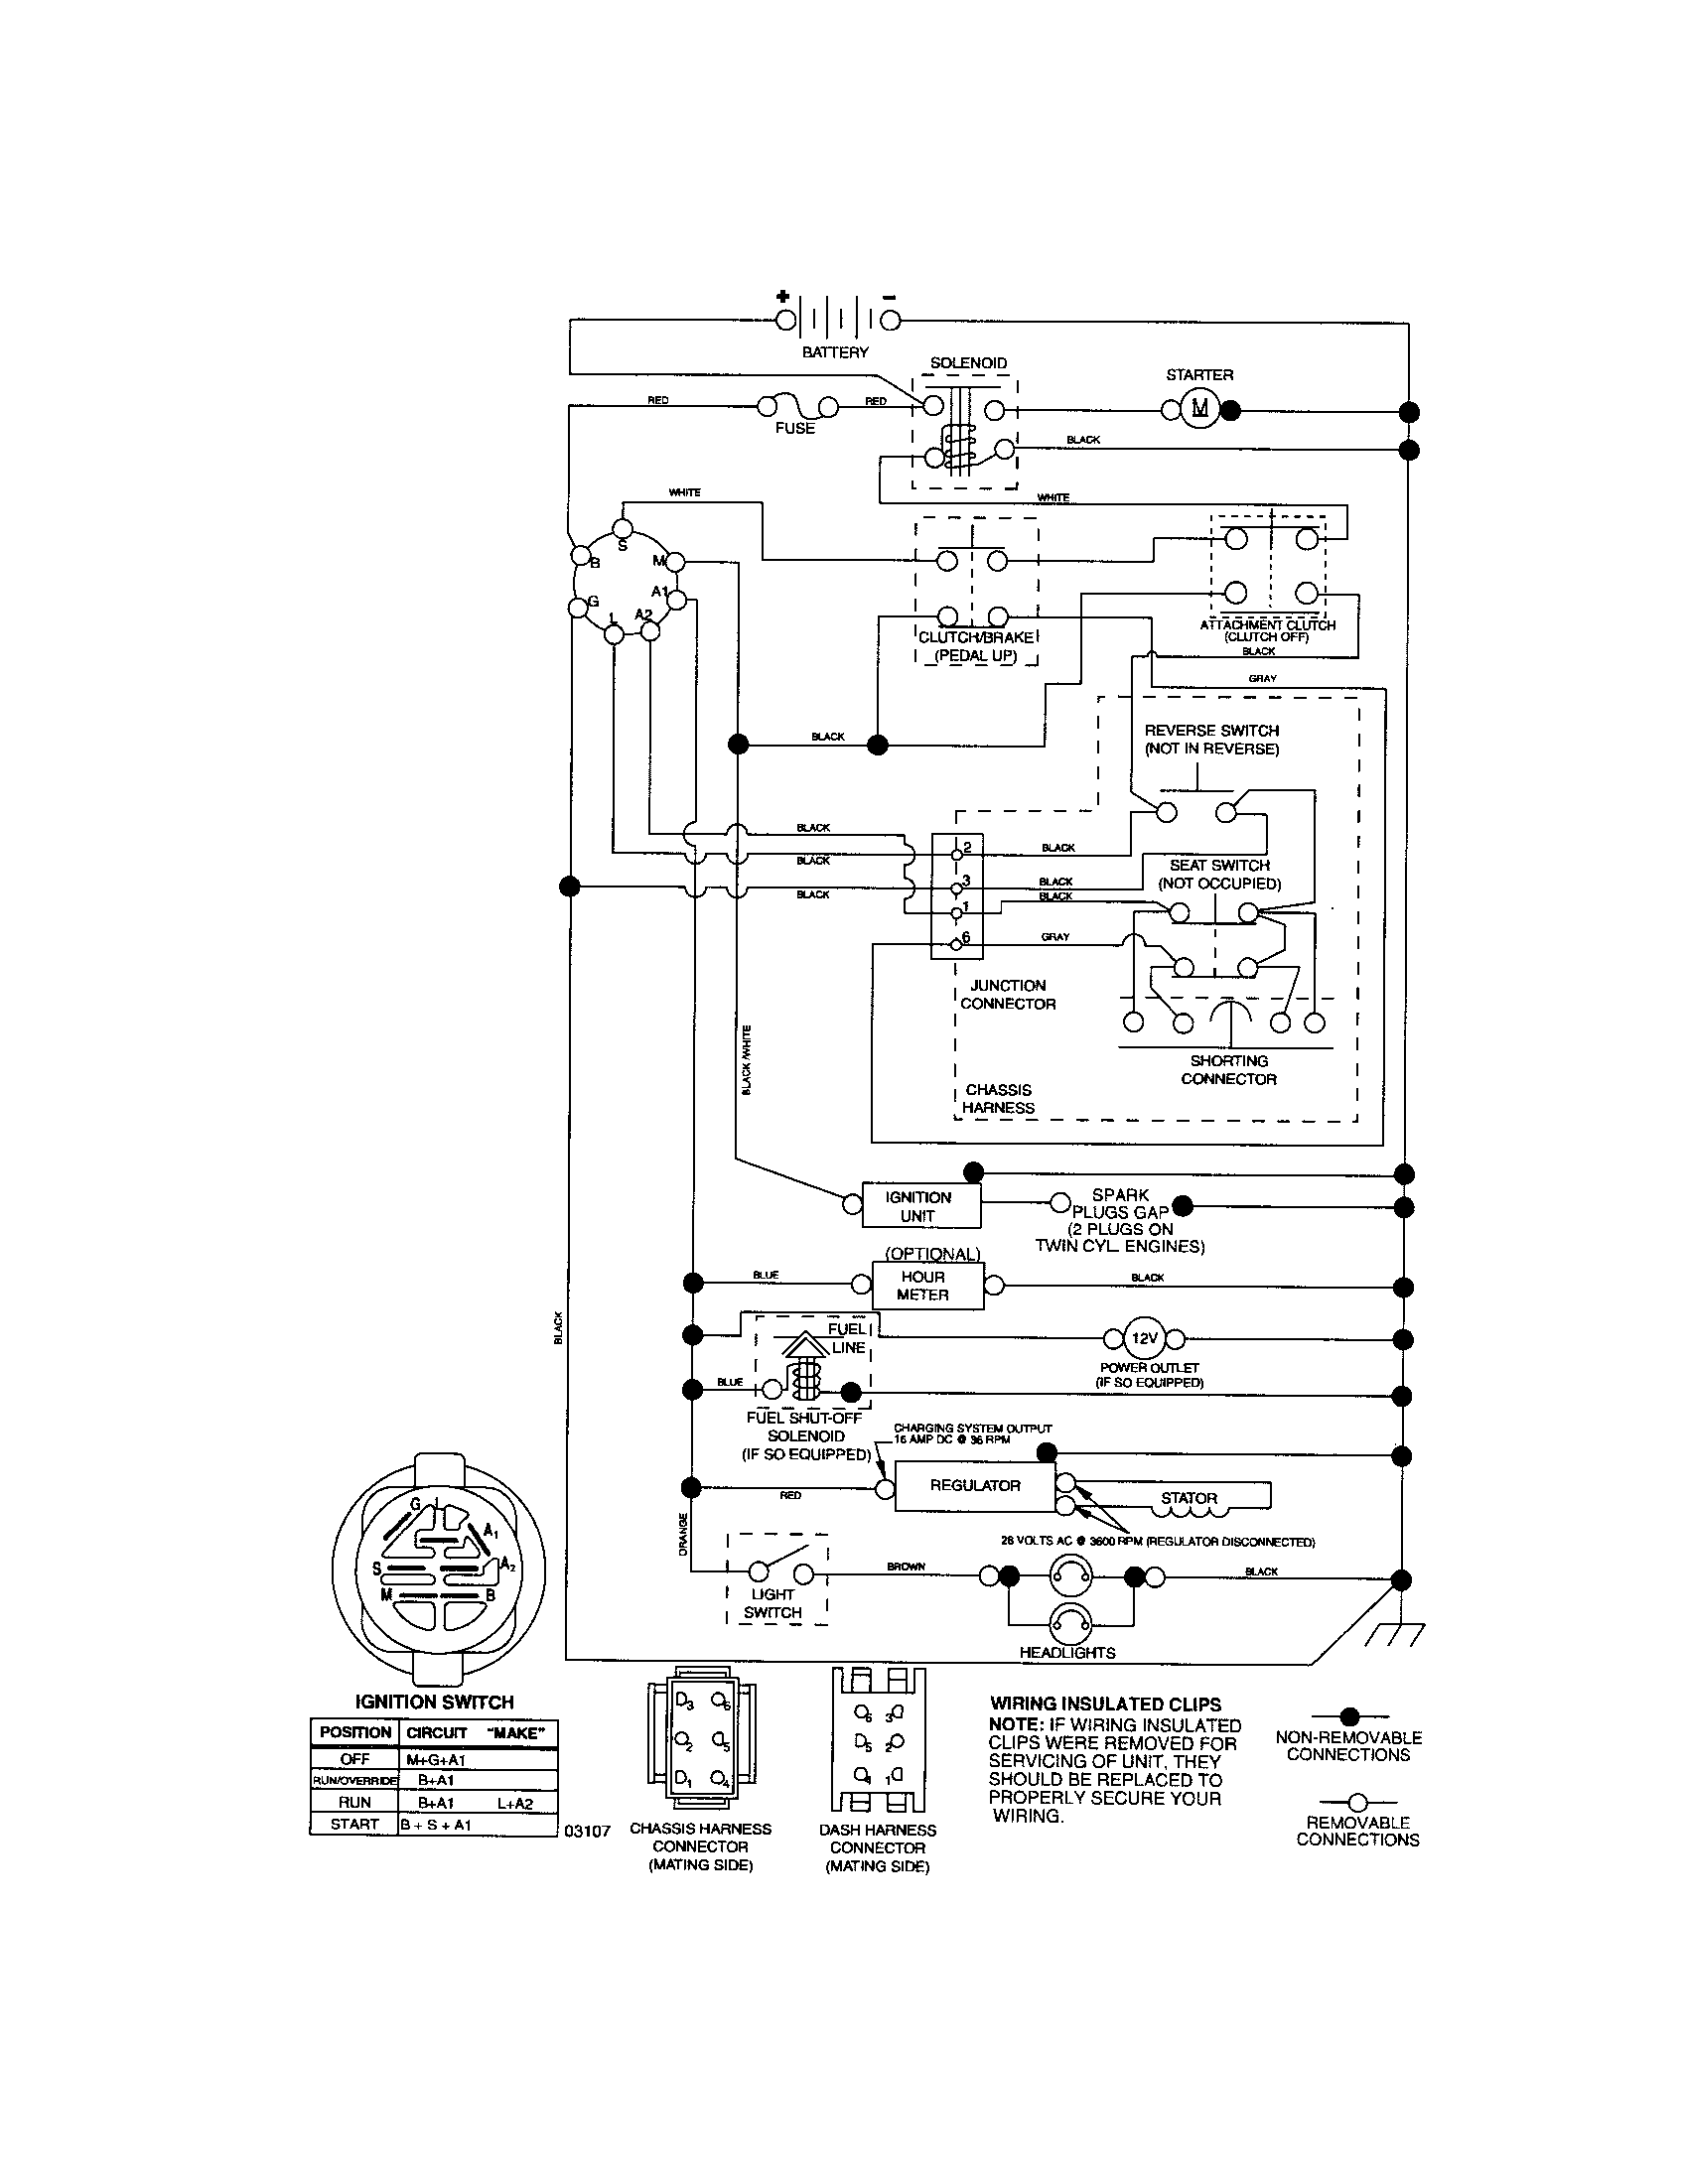 dgs 6500 pto switch wiring diagram wiring diagrams scematic toggle switch wiring diagram pto rocker switch wiring diagram [ 1696 x 2200 Pixel ]